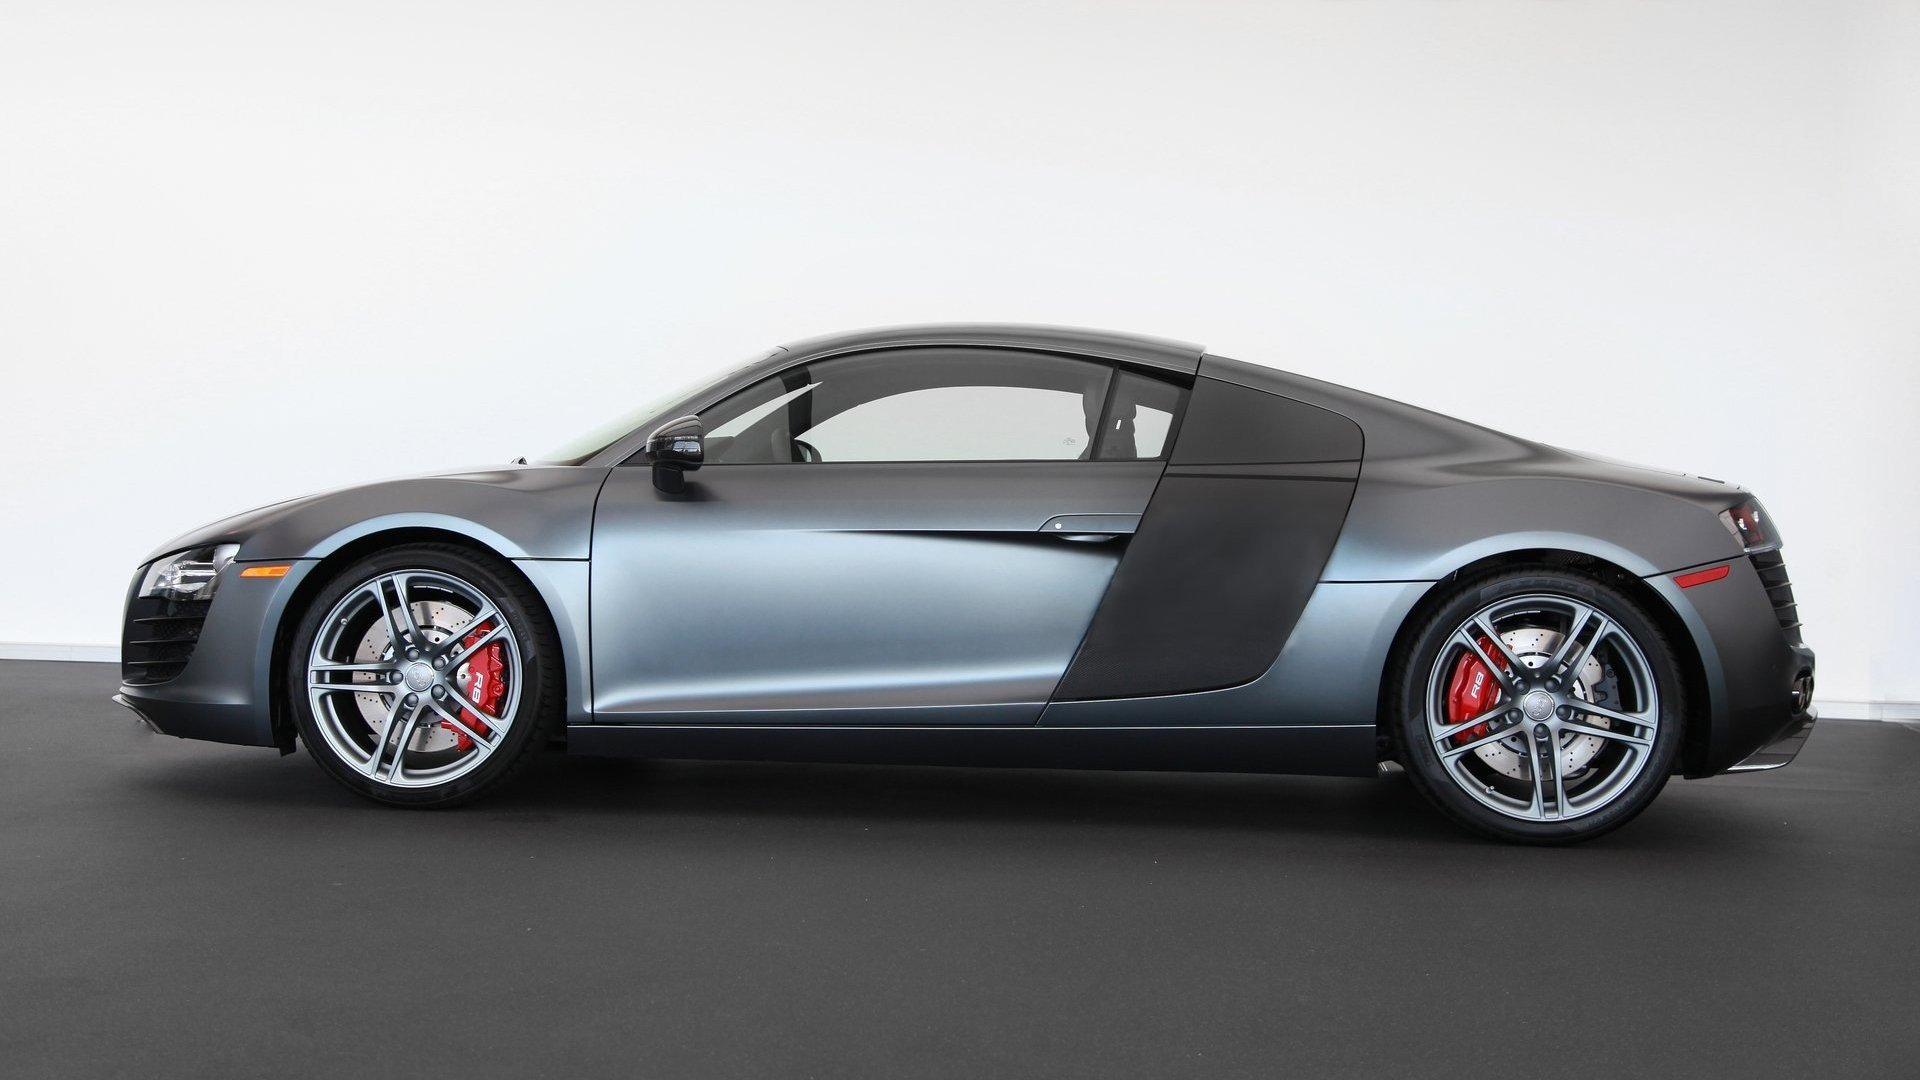 Cars Audi Audi R8 Sports Cars Grey Cars Wallpaper